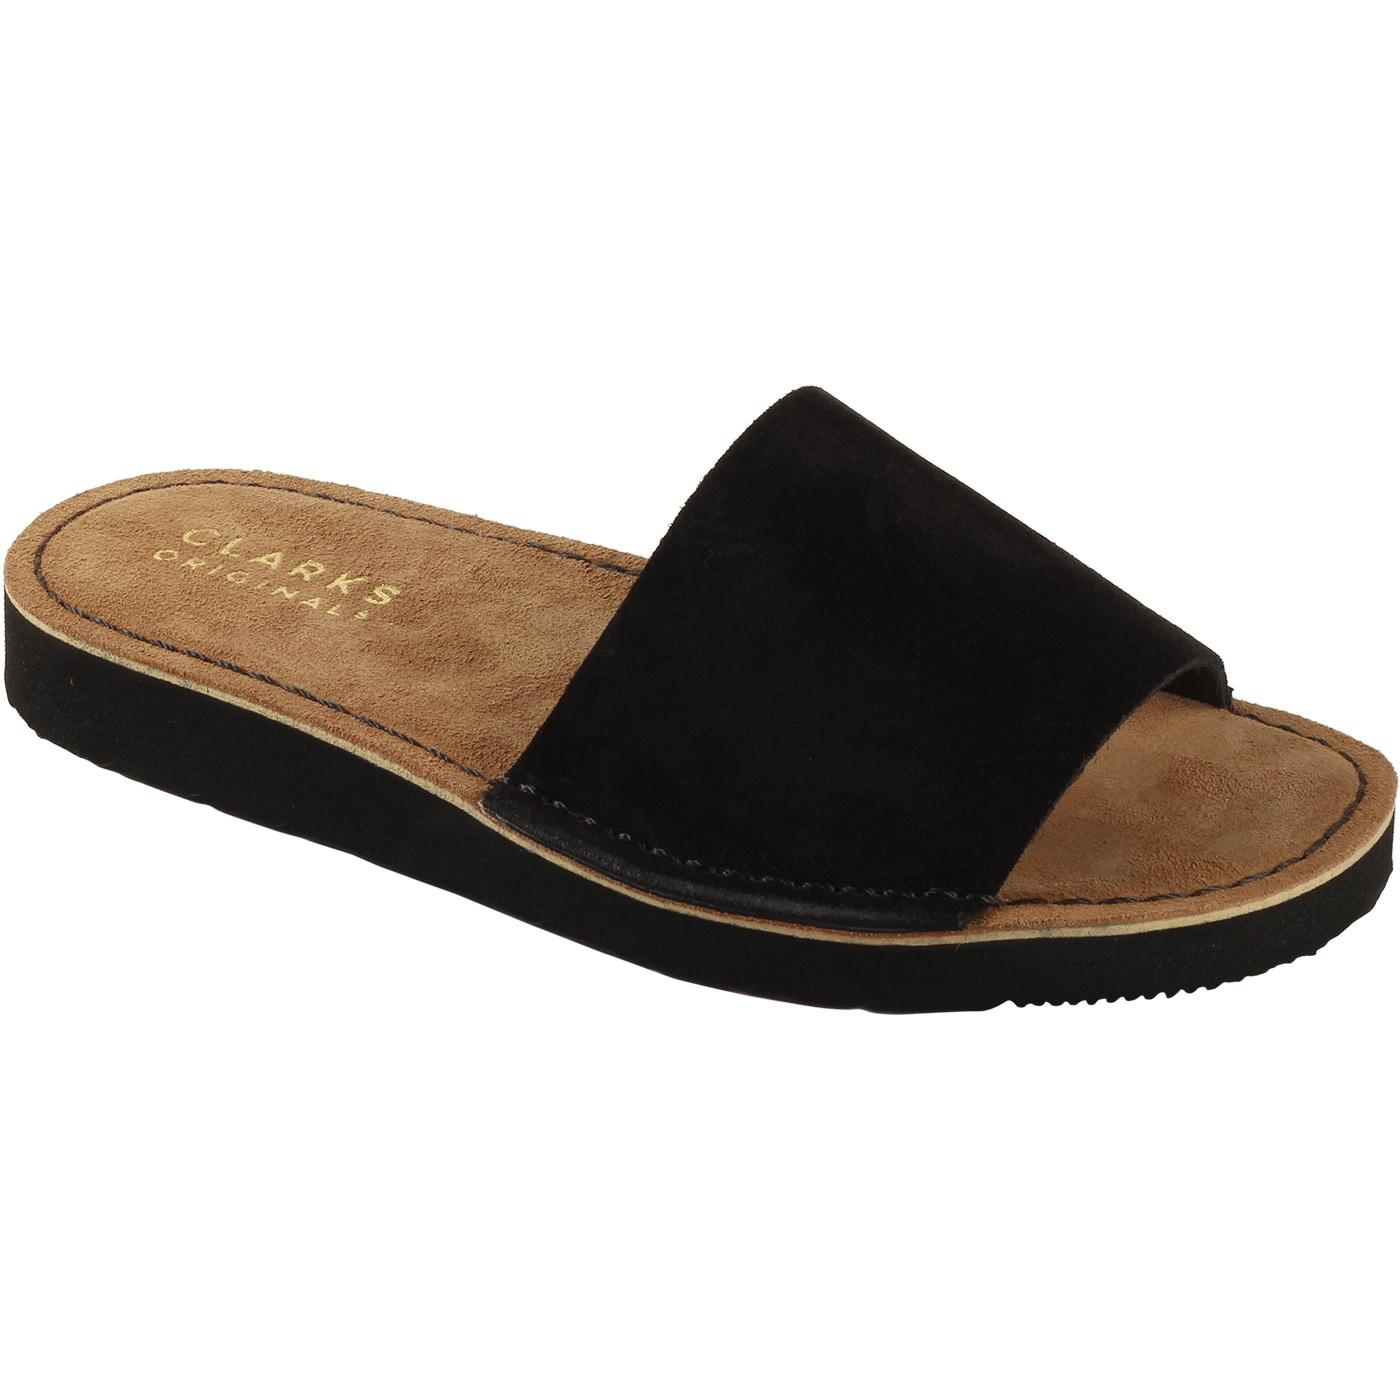 Lunan CLARKS ORIGINALS Retro Suede Slides (Black)